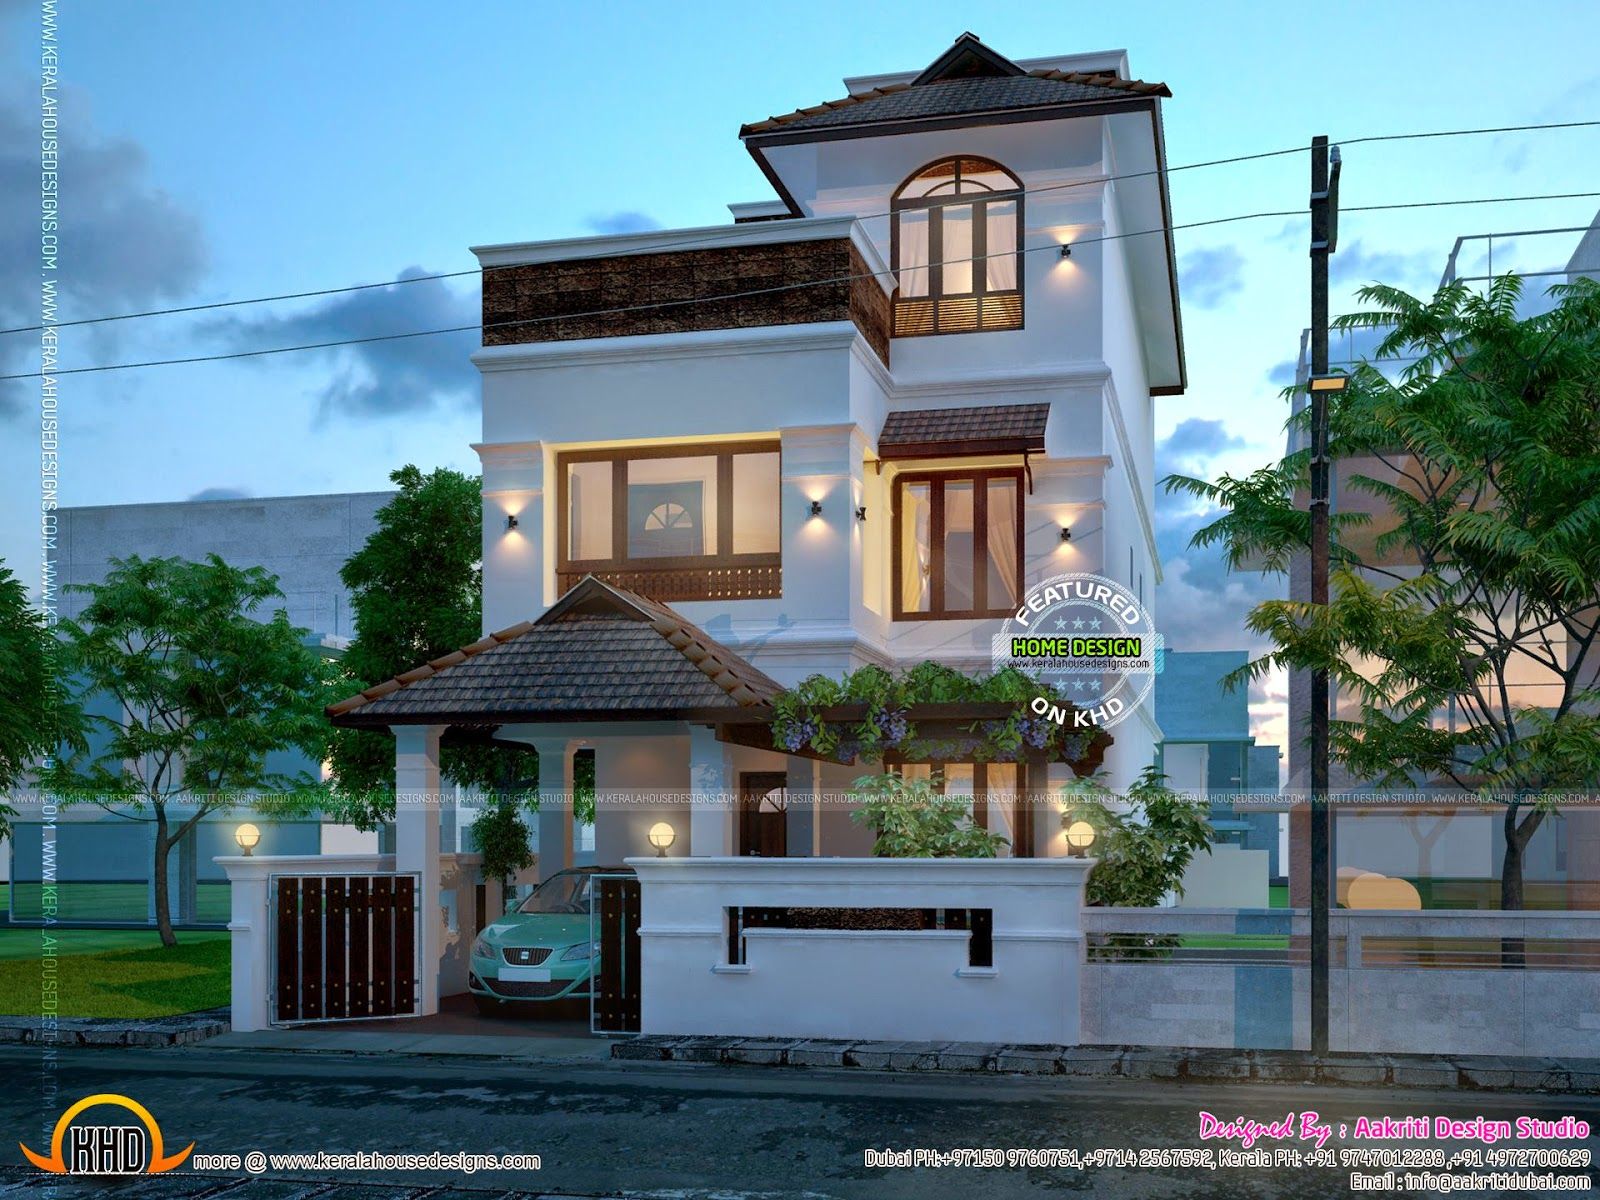 2014 kerala home design and floor plans - Home design pic ...